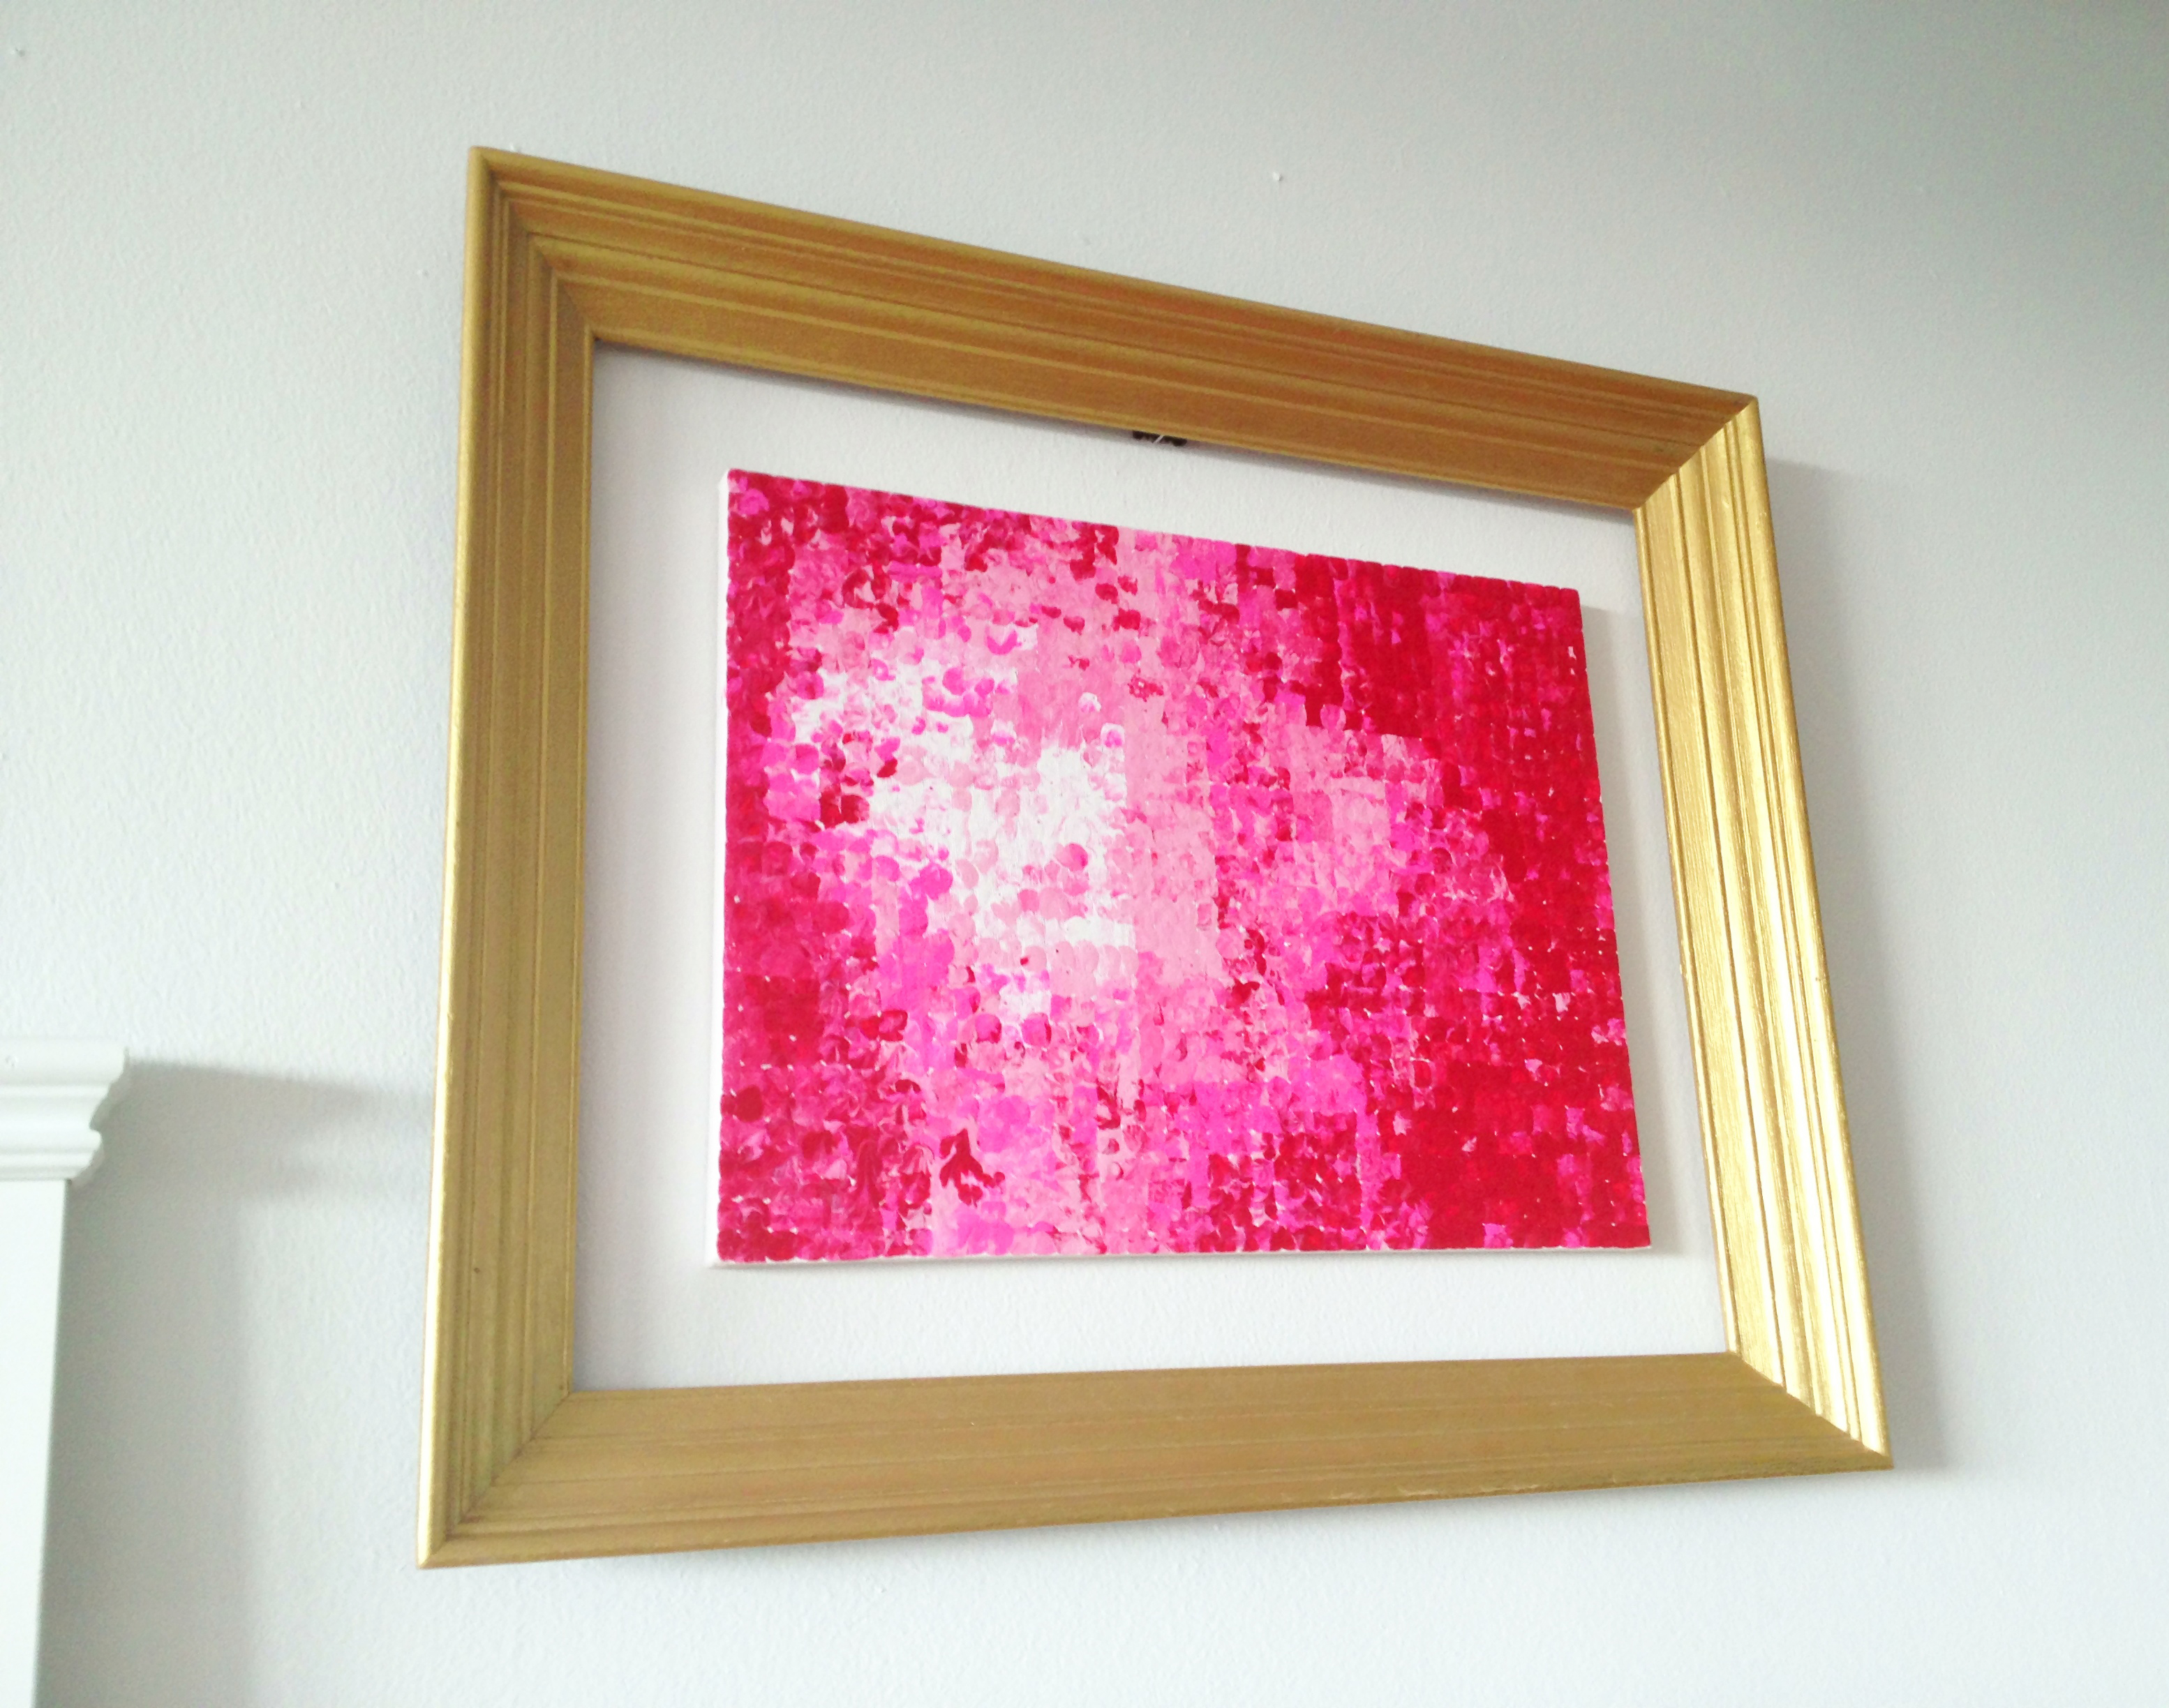 PIXILATED ART FRAMED